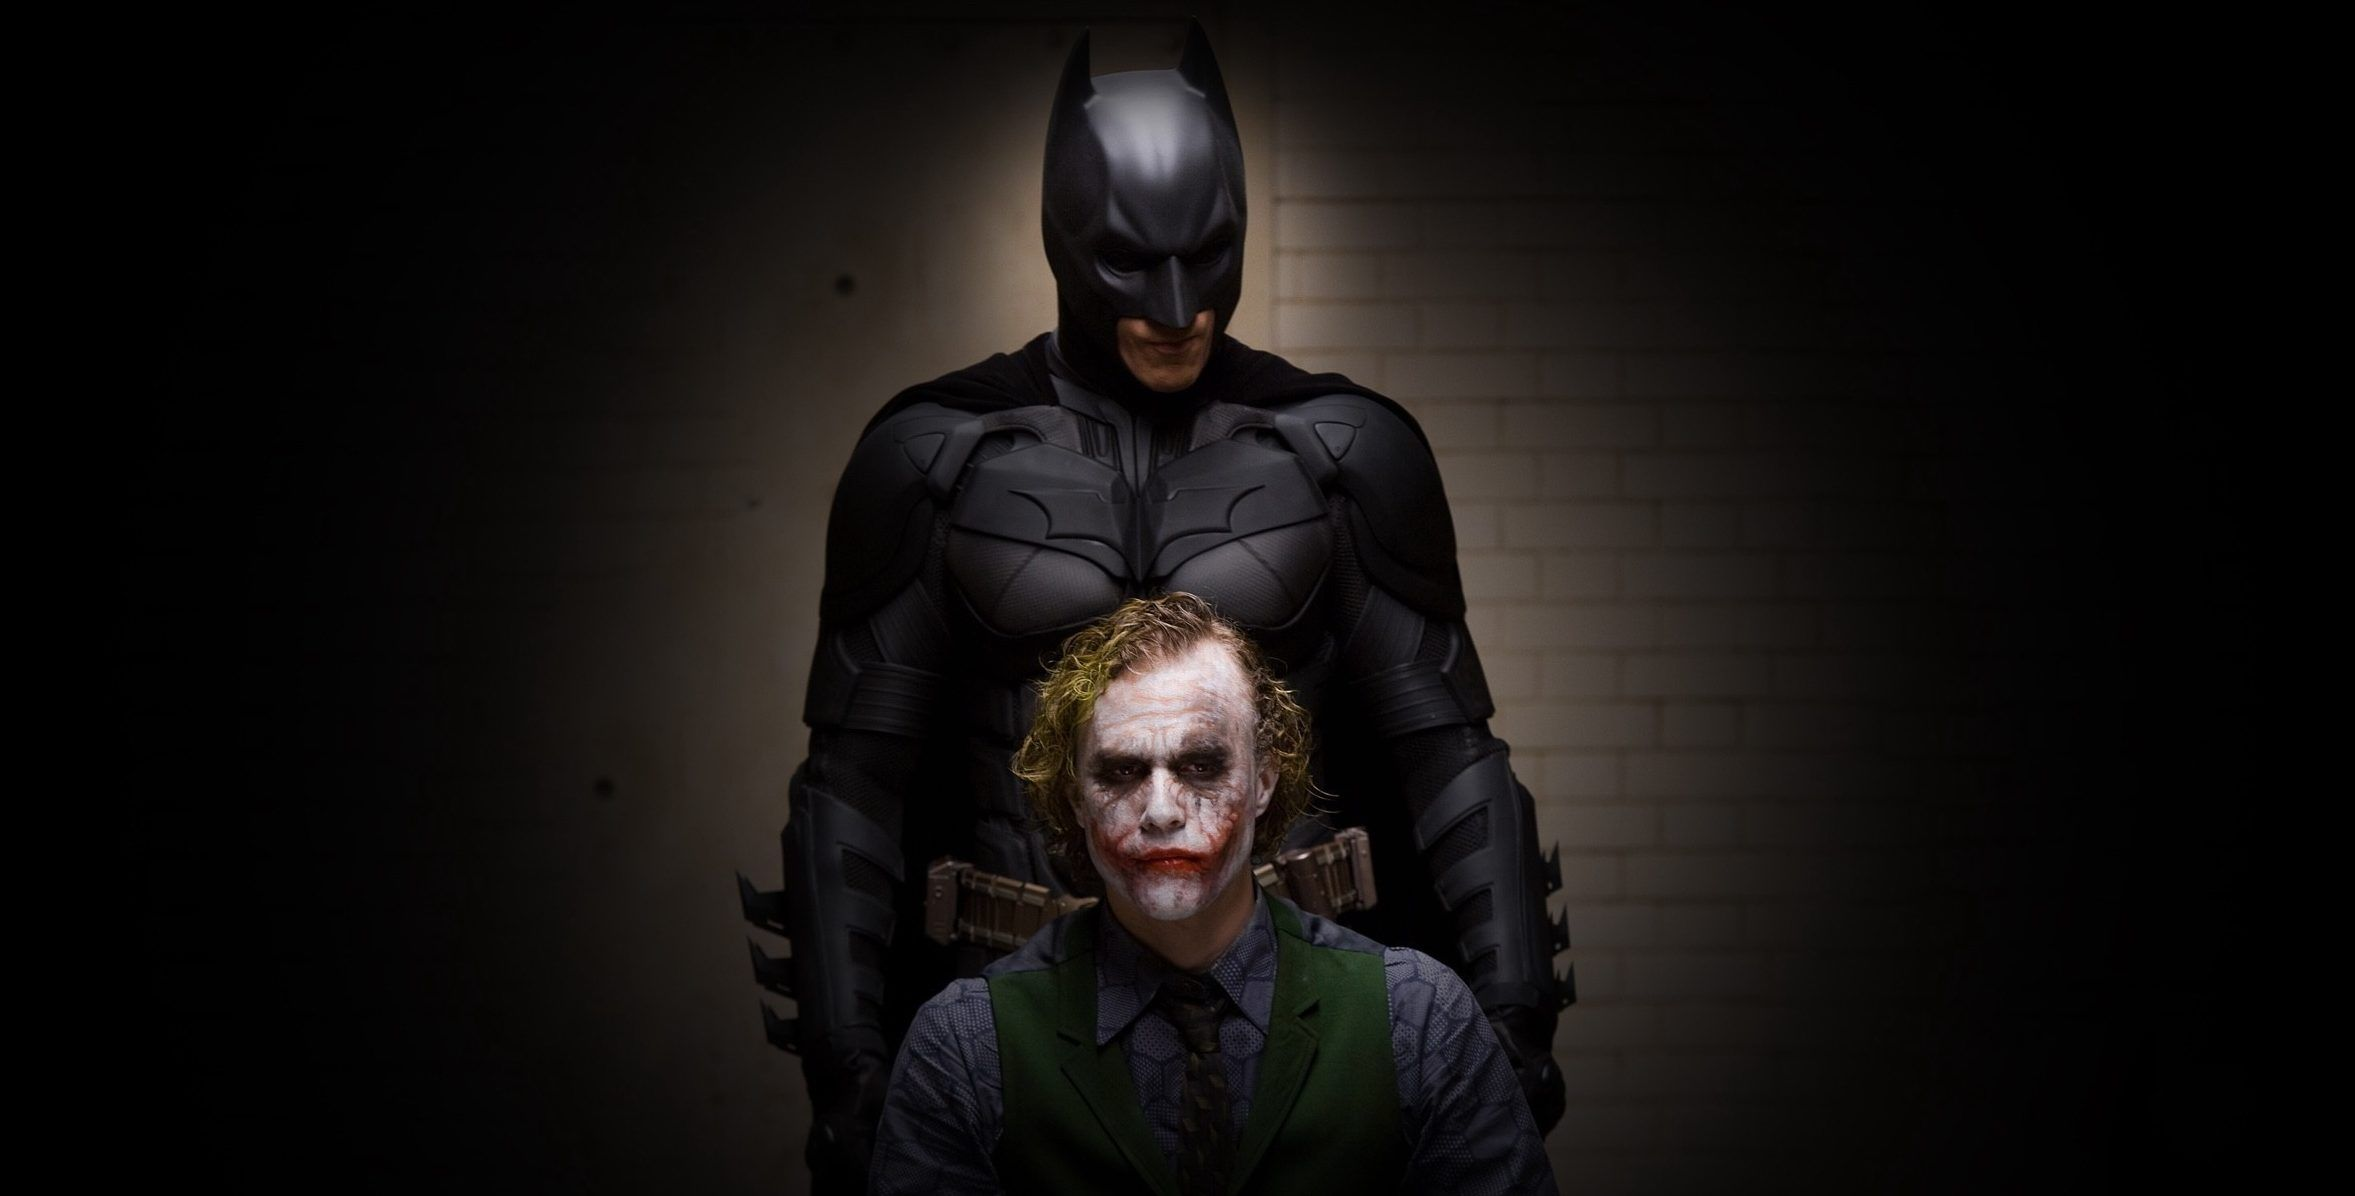 Film The Dark Knight: Actors, Roles, Story 21